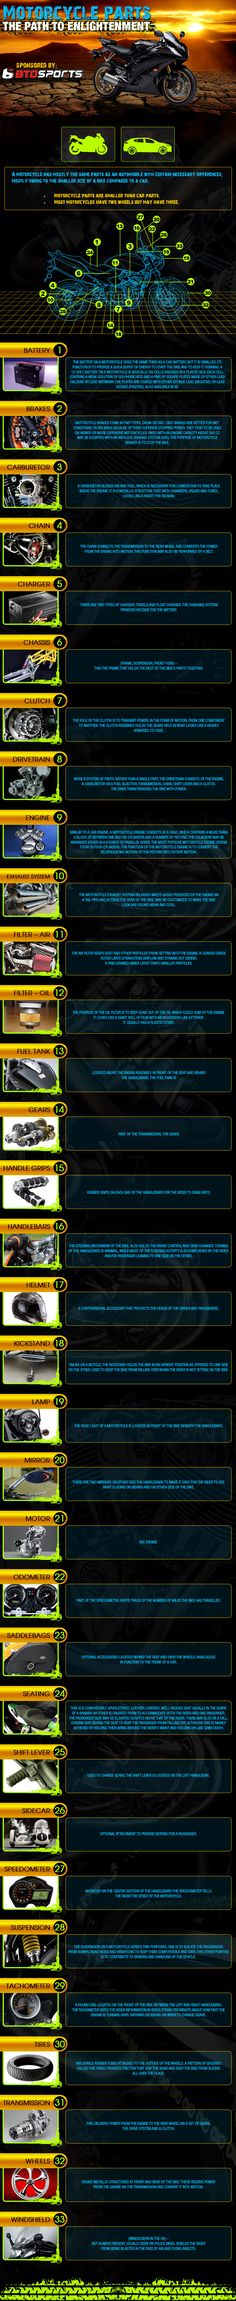 Motorcycle Parts - What are all the Parts on a Motorcycle? #infographic – BTO Sports #motocross